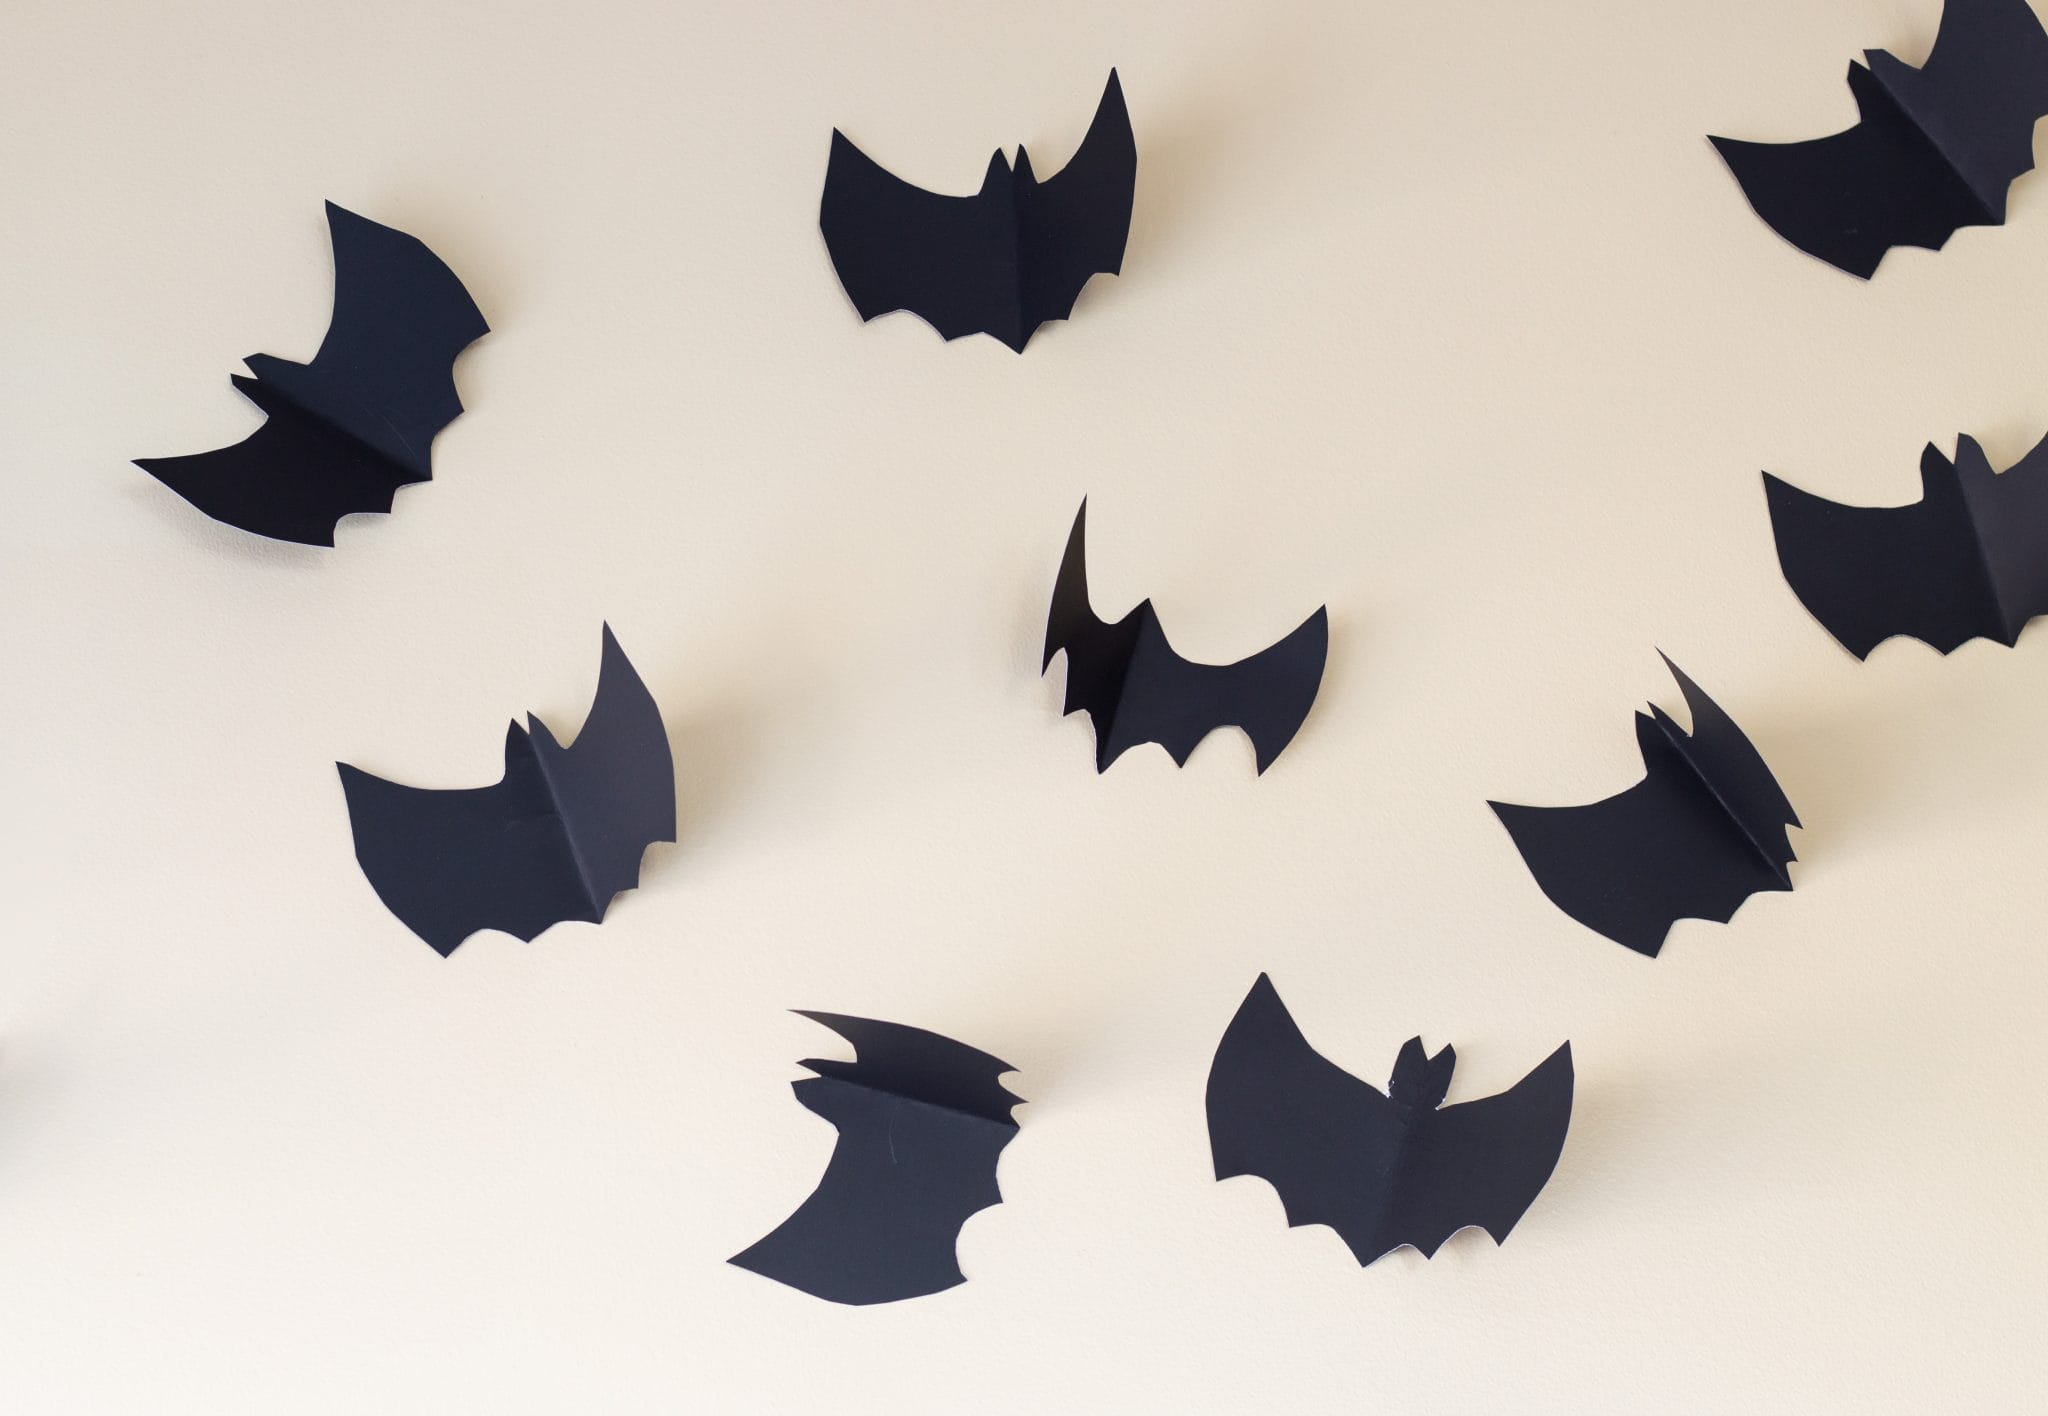 Poster Board Bats- Cheap and Easy Halloween Decorating Ideas